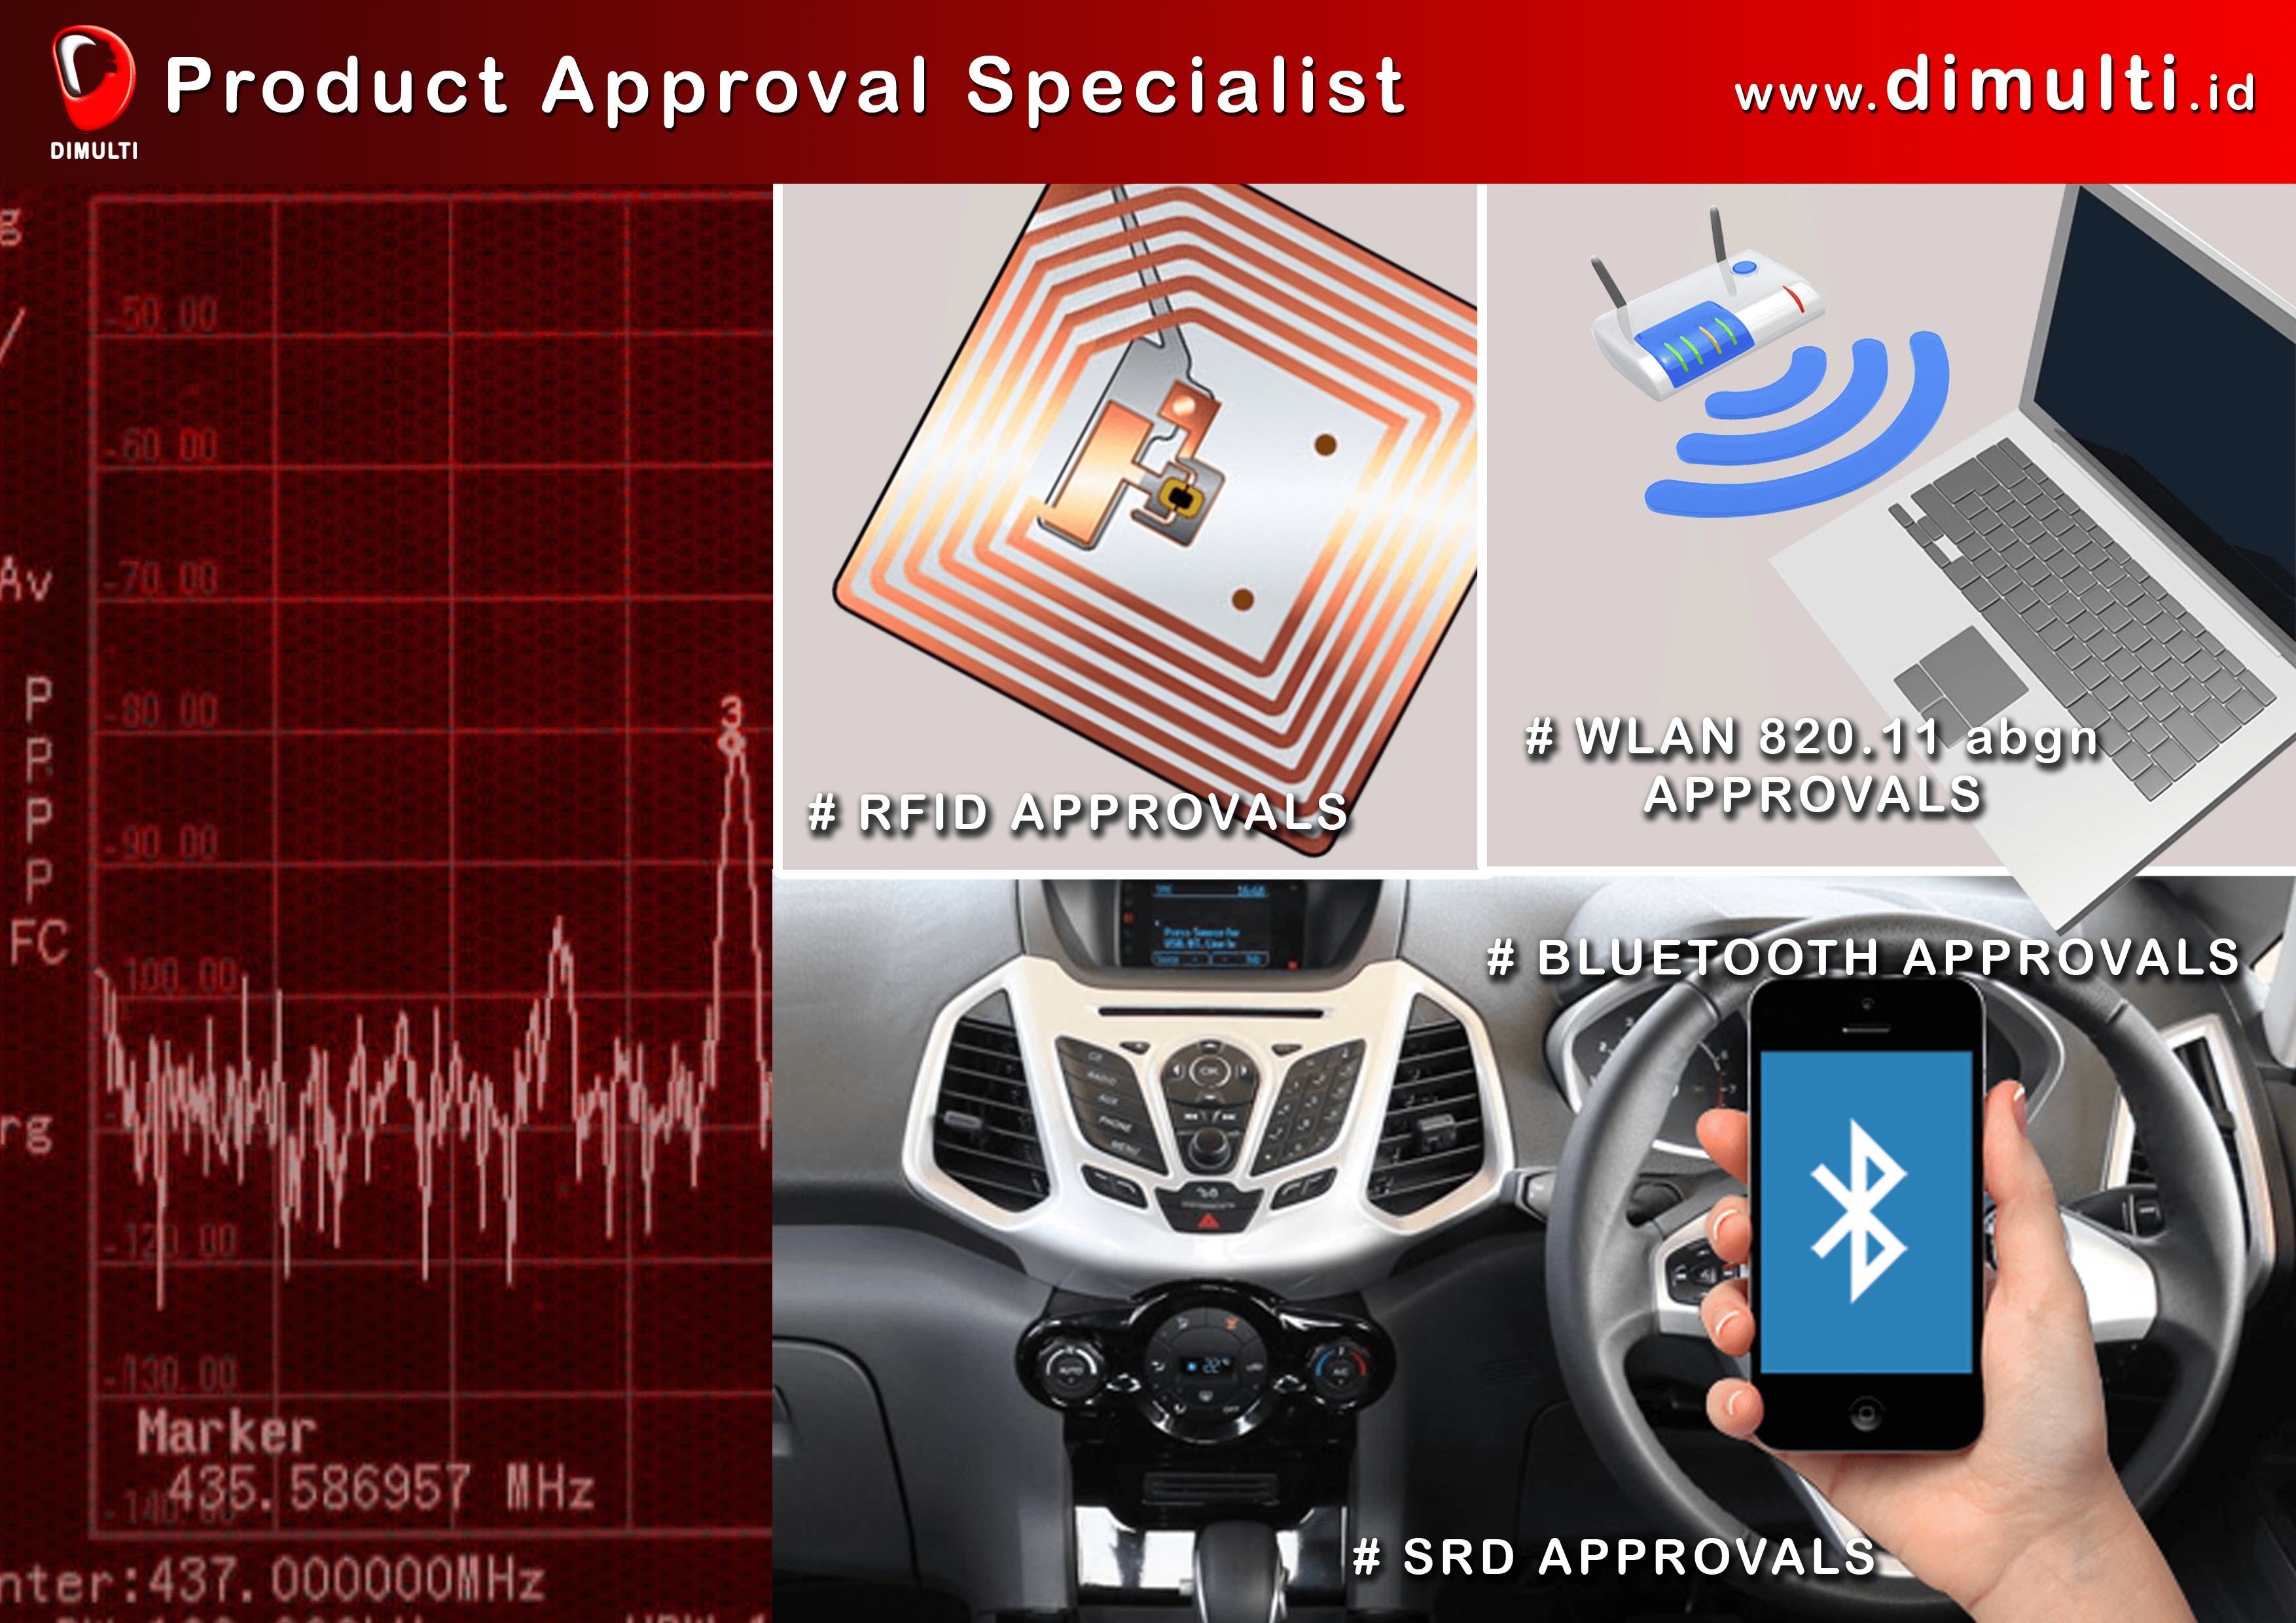 Indonesia SDPPI approval services